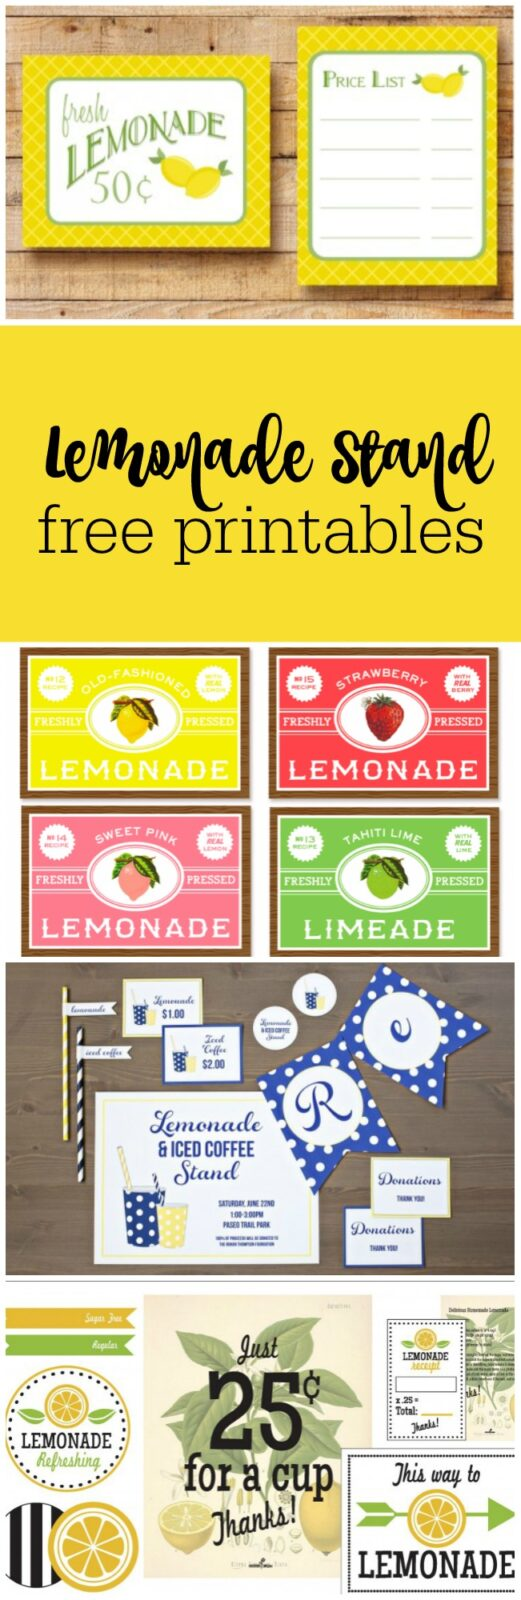 Lemonade stand free printables curated by The Party Teacher